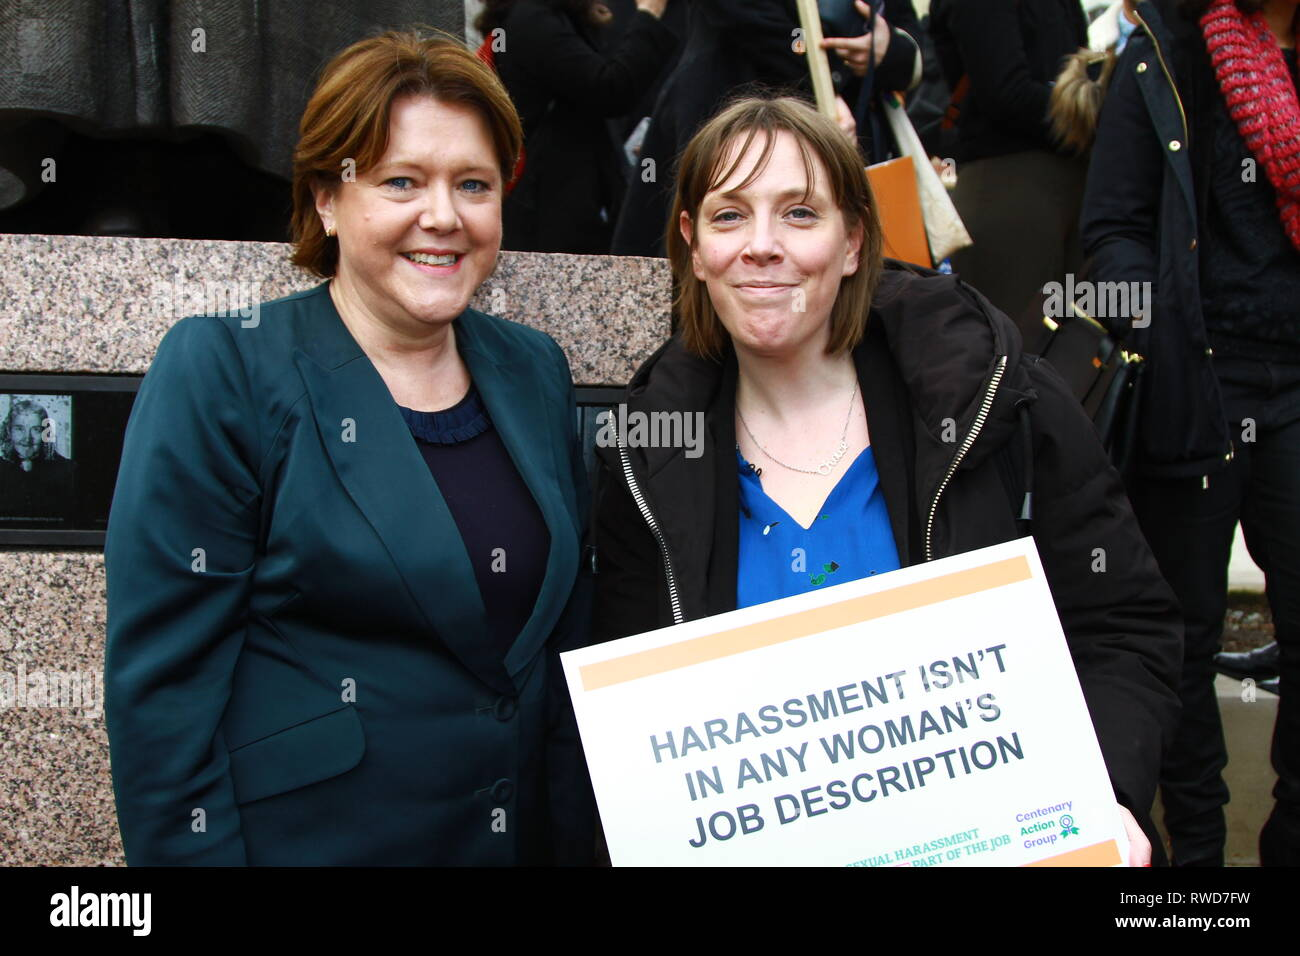 Maria Miller [ Conservative ] and Jess Phillips [ Labour ] stand together in Parliament Square, Westminster whilst attending and supporting March 4 women and Muslim women's network UK. on 5th March 2019. Sign being held with the words Harassment isn't in any woman's job description. British politicians. UK politicians. Politics. March 4 Women. - Stock Image